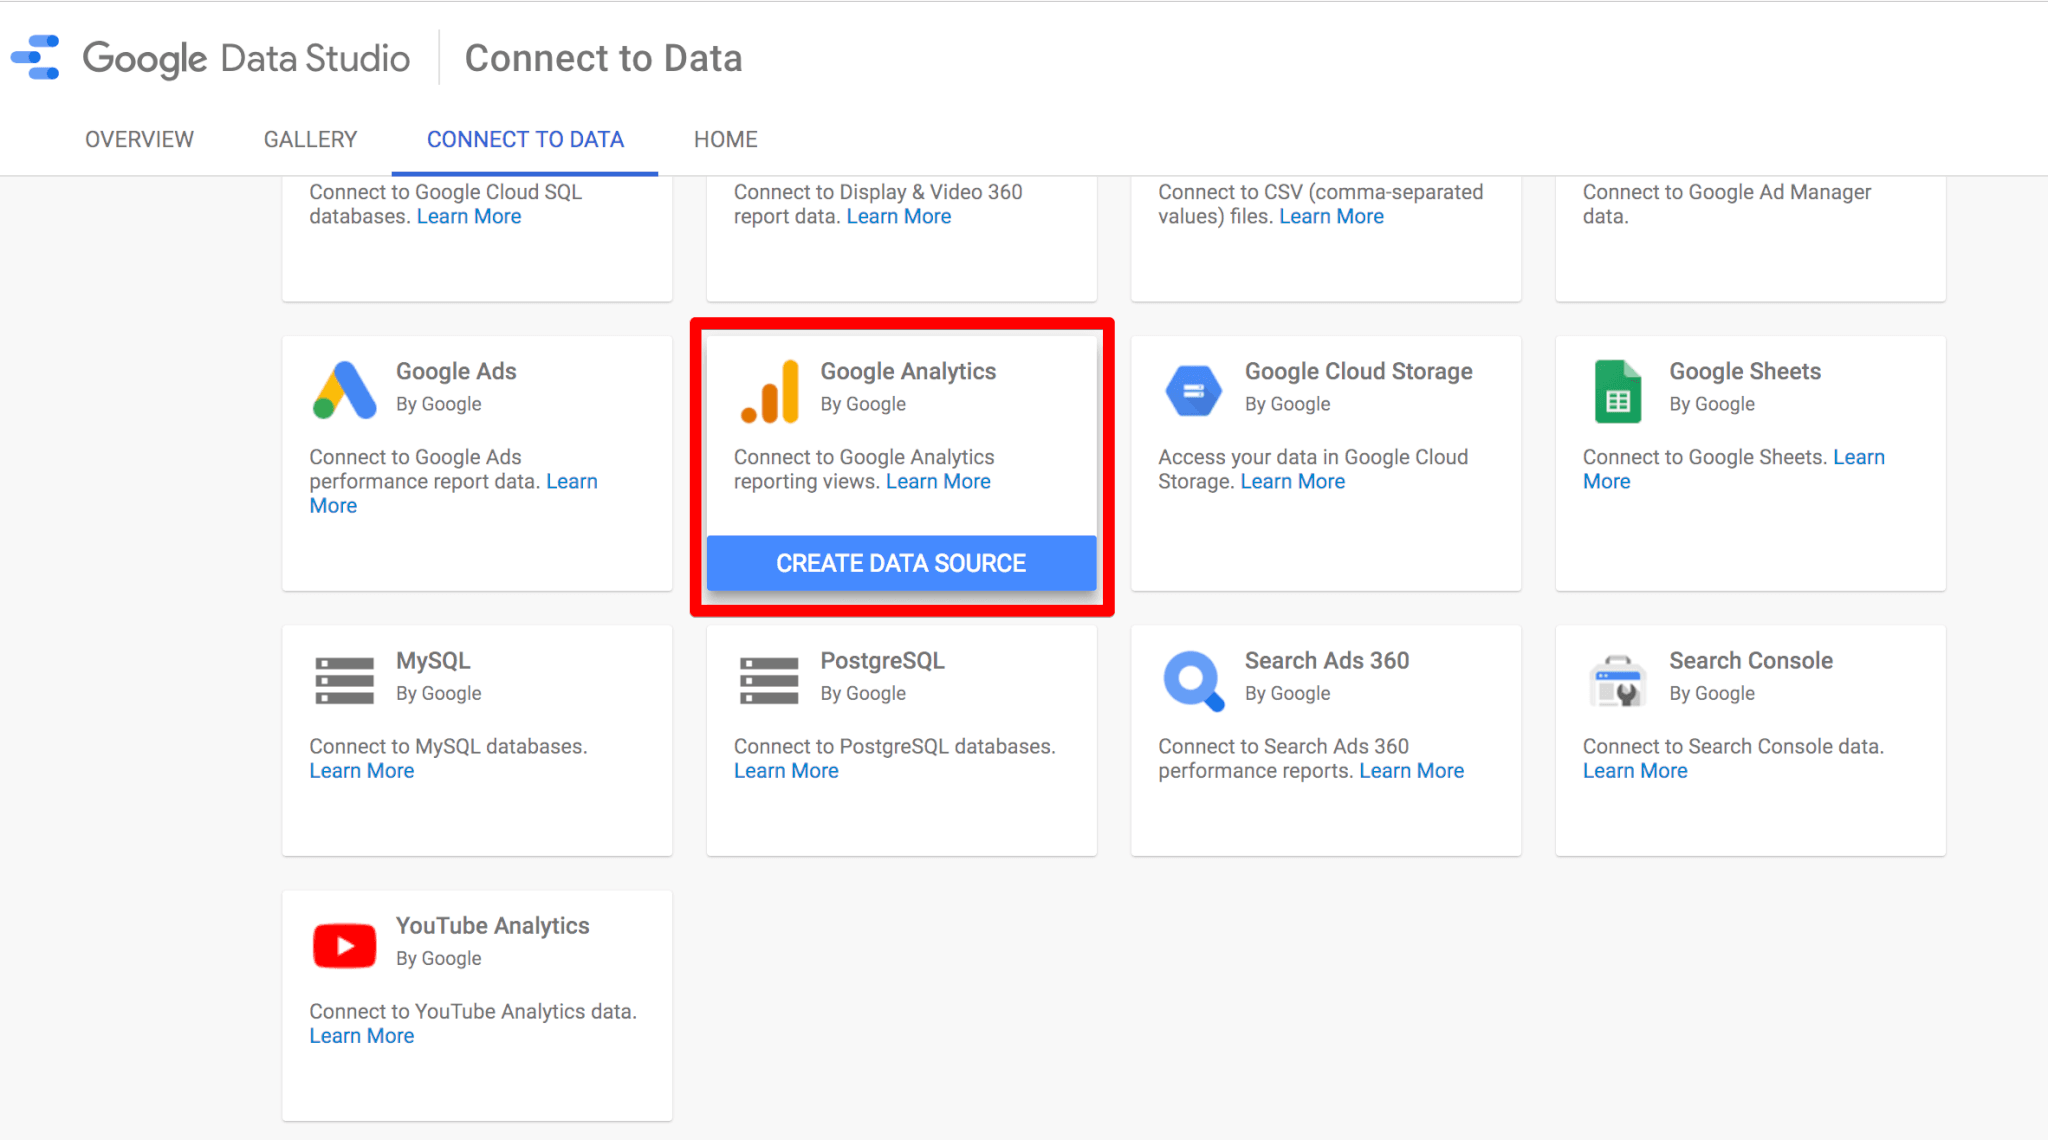 Connecting Google Data Studio to Google Analytics